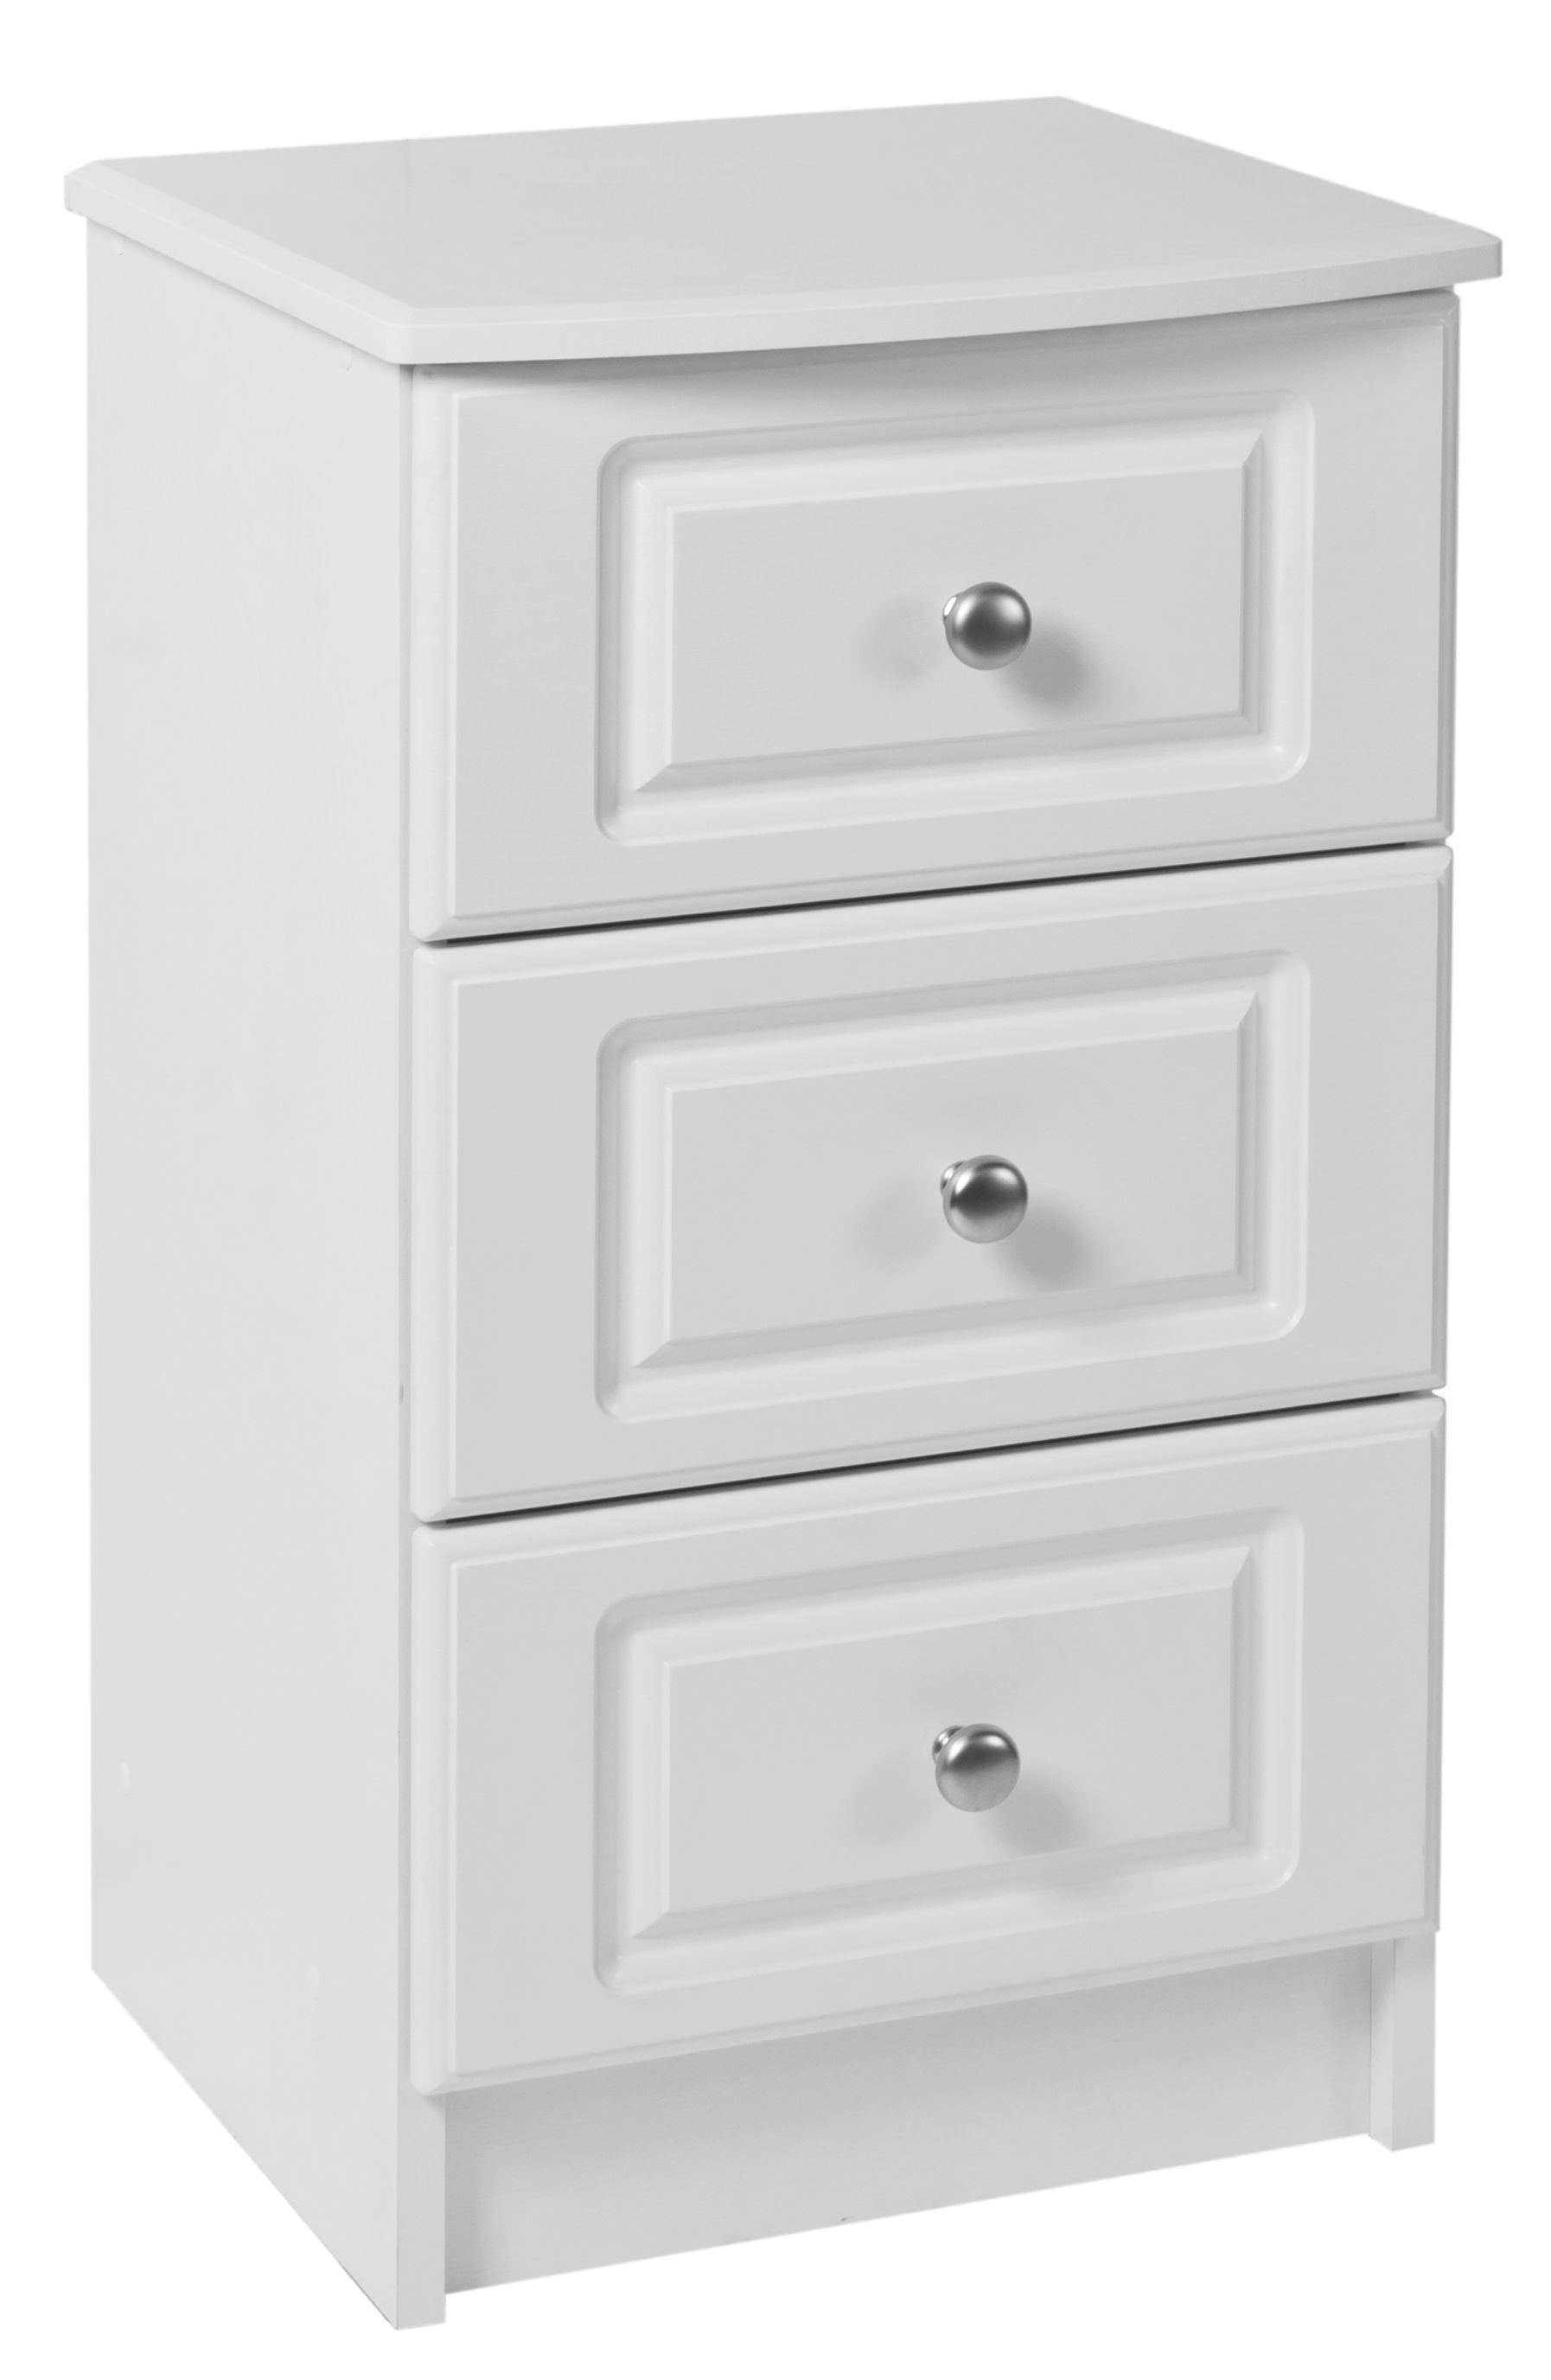 This Lovely three drawer chest part of The Kempton Bedroom